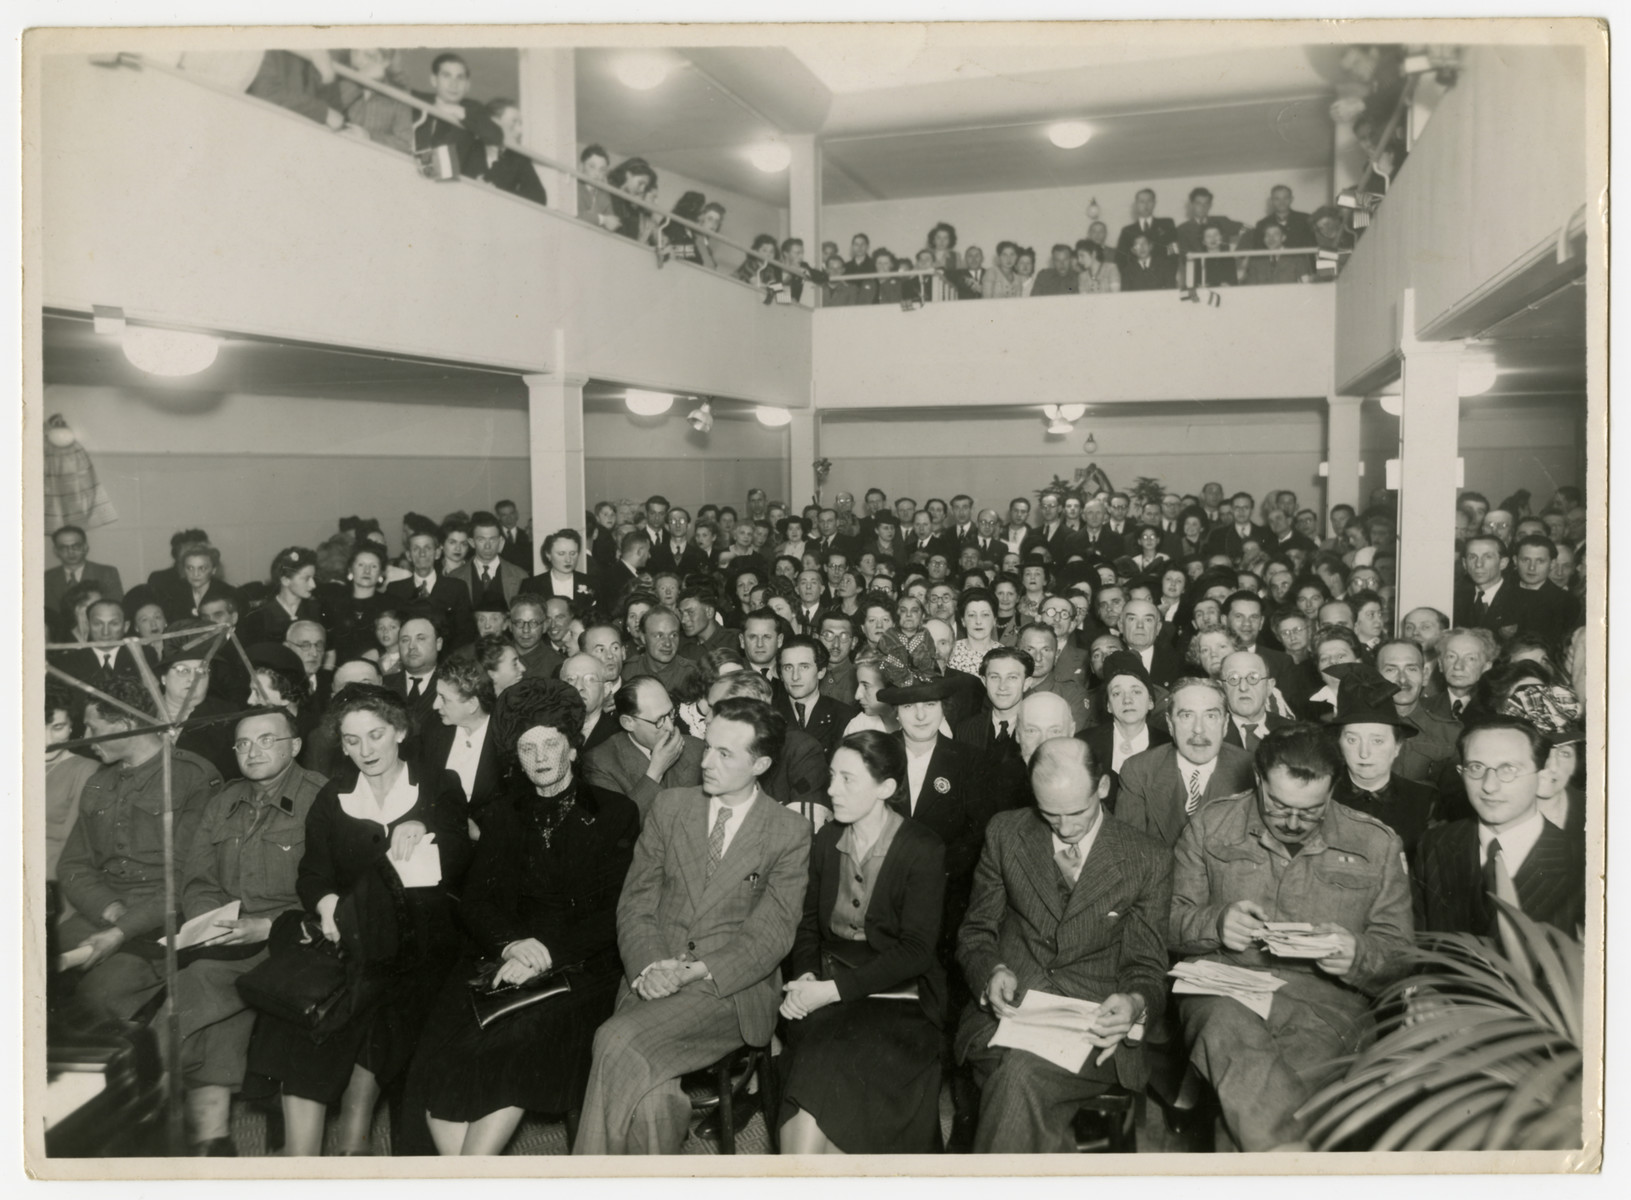 A large gathering of Belgian Jews gathers for a program for the Jewish Brigade.    Chaim Perelman is pictured in the front row, right.